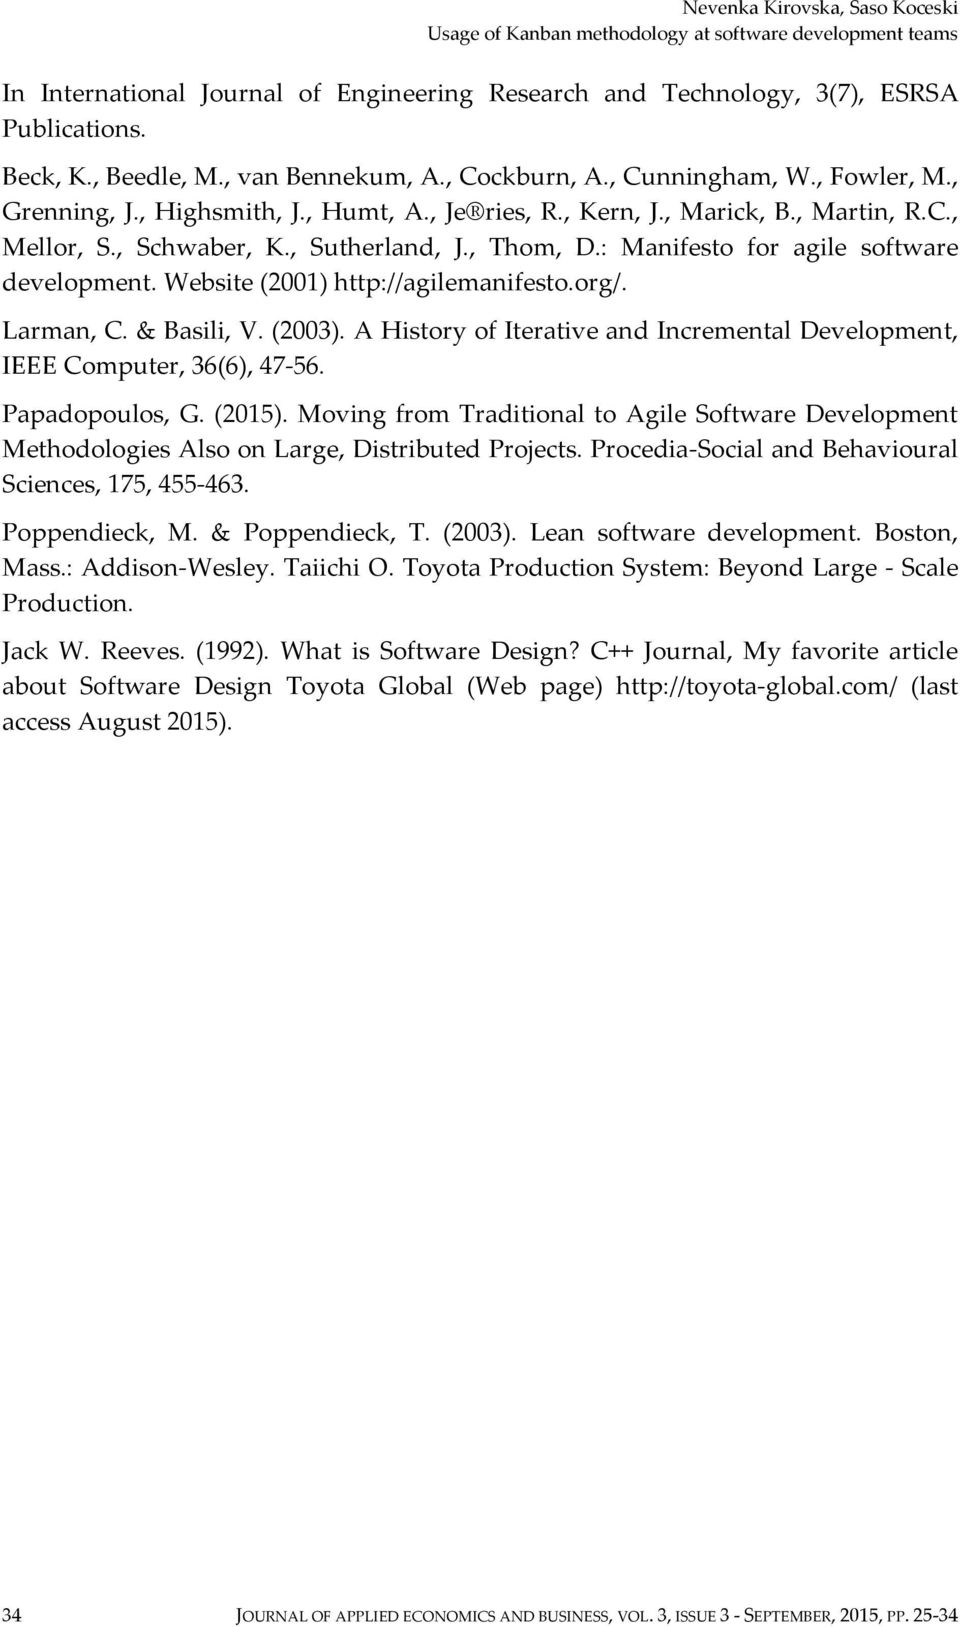 : Manifesto for agile software development. Website (2001) http://agilemanifesto.org/. Larman, C. & Basili, V. (2003). A History of Iterative and Incremental Development, IEEE Computer, 36(6), 47-56.